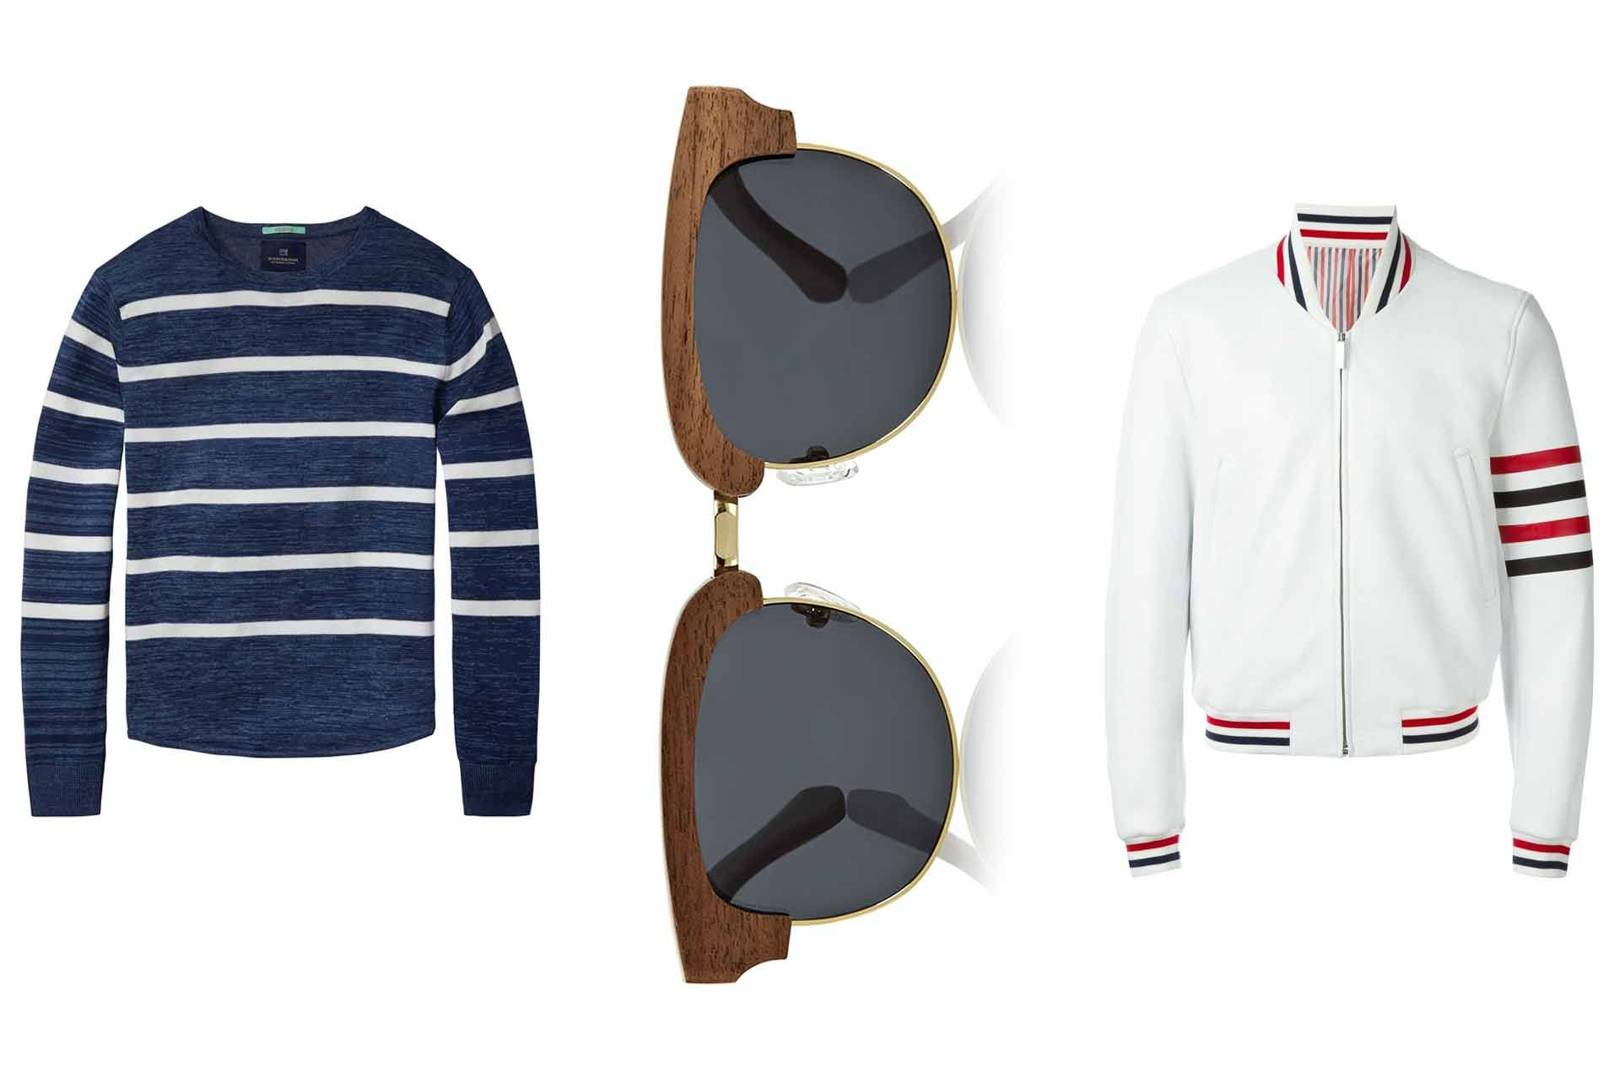 f3d4b0f5f0c This week s 10 best new menswear items